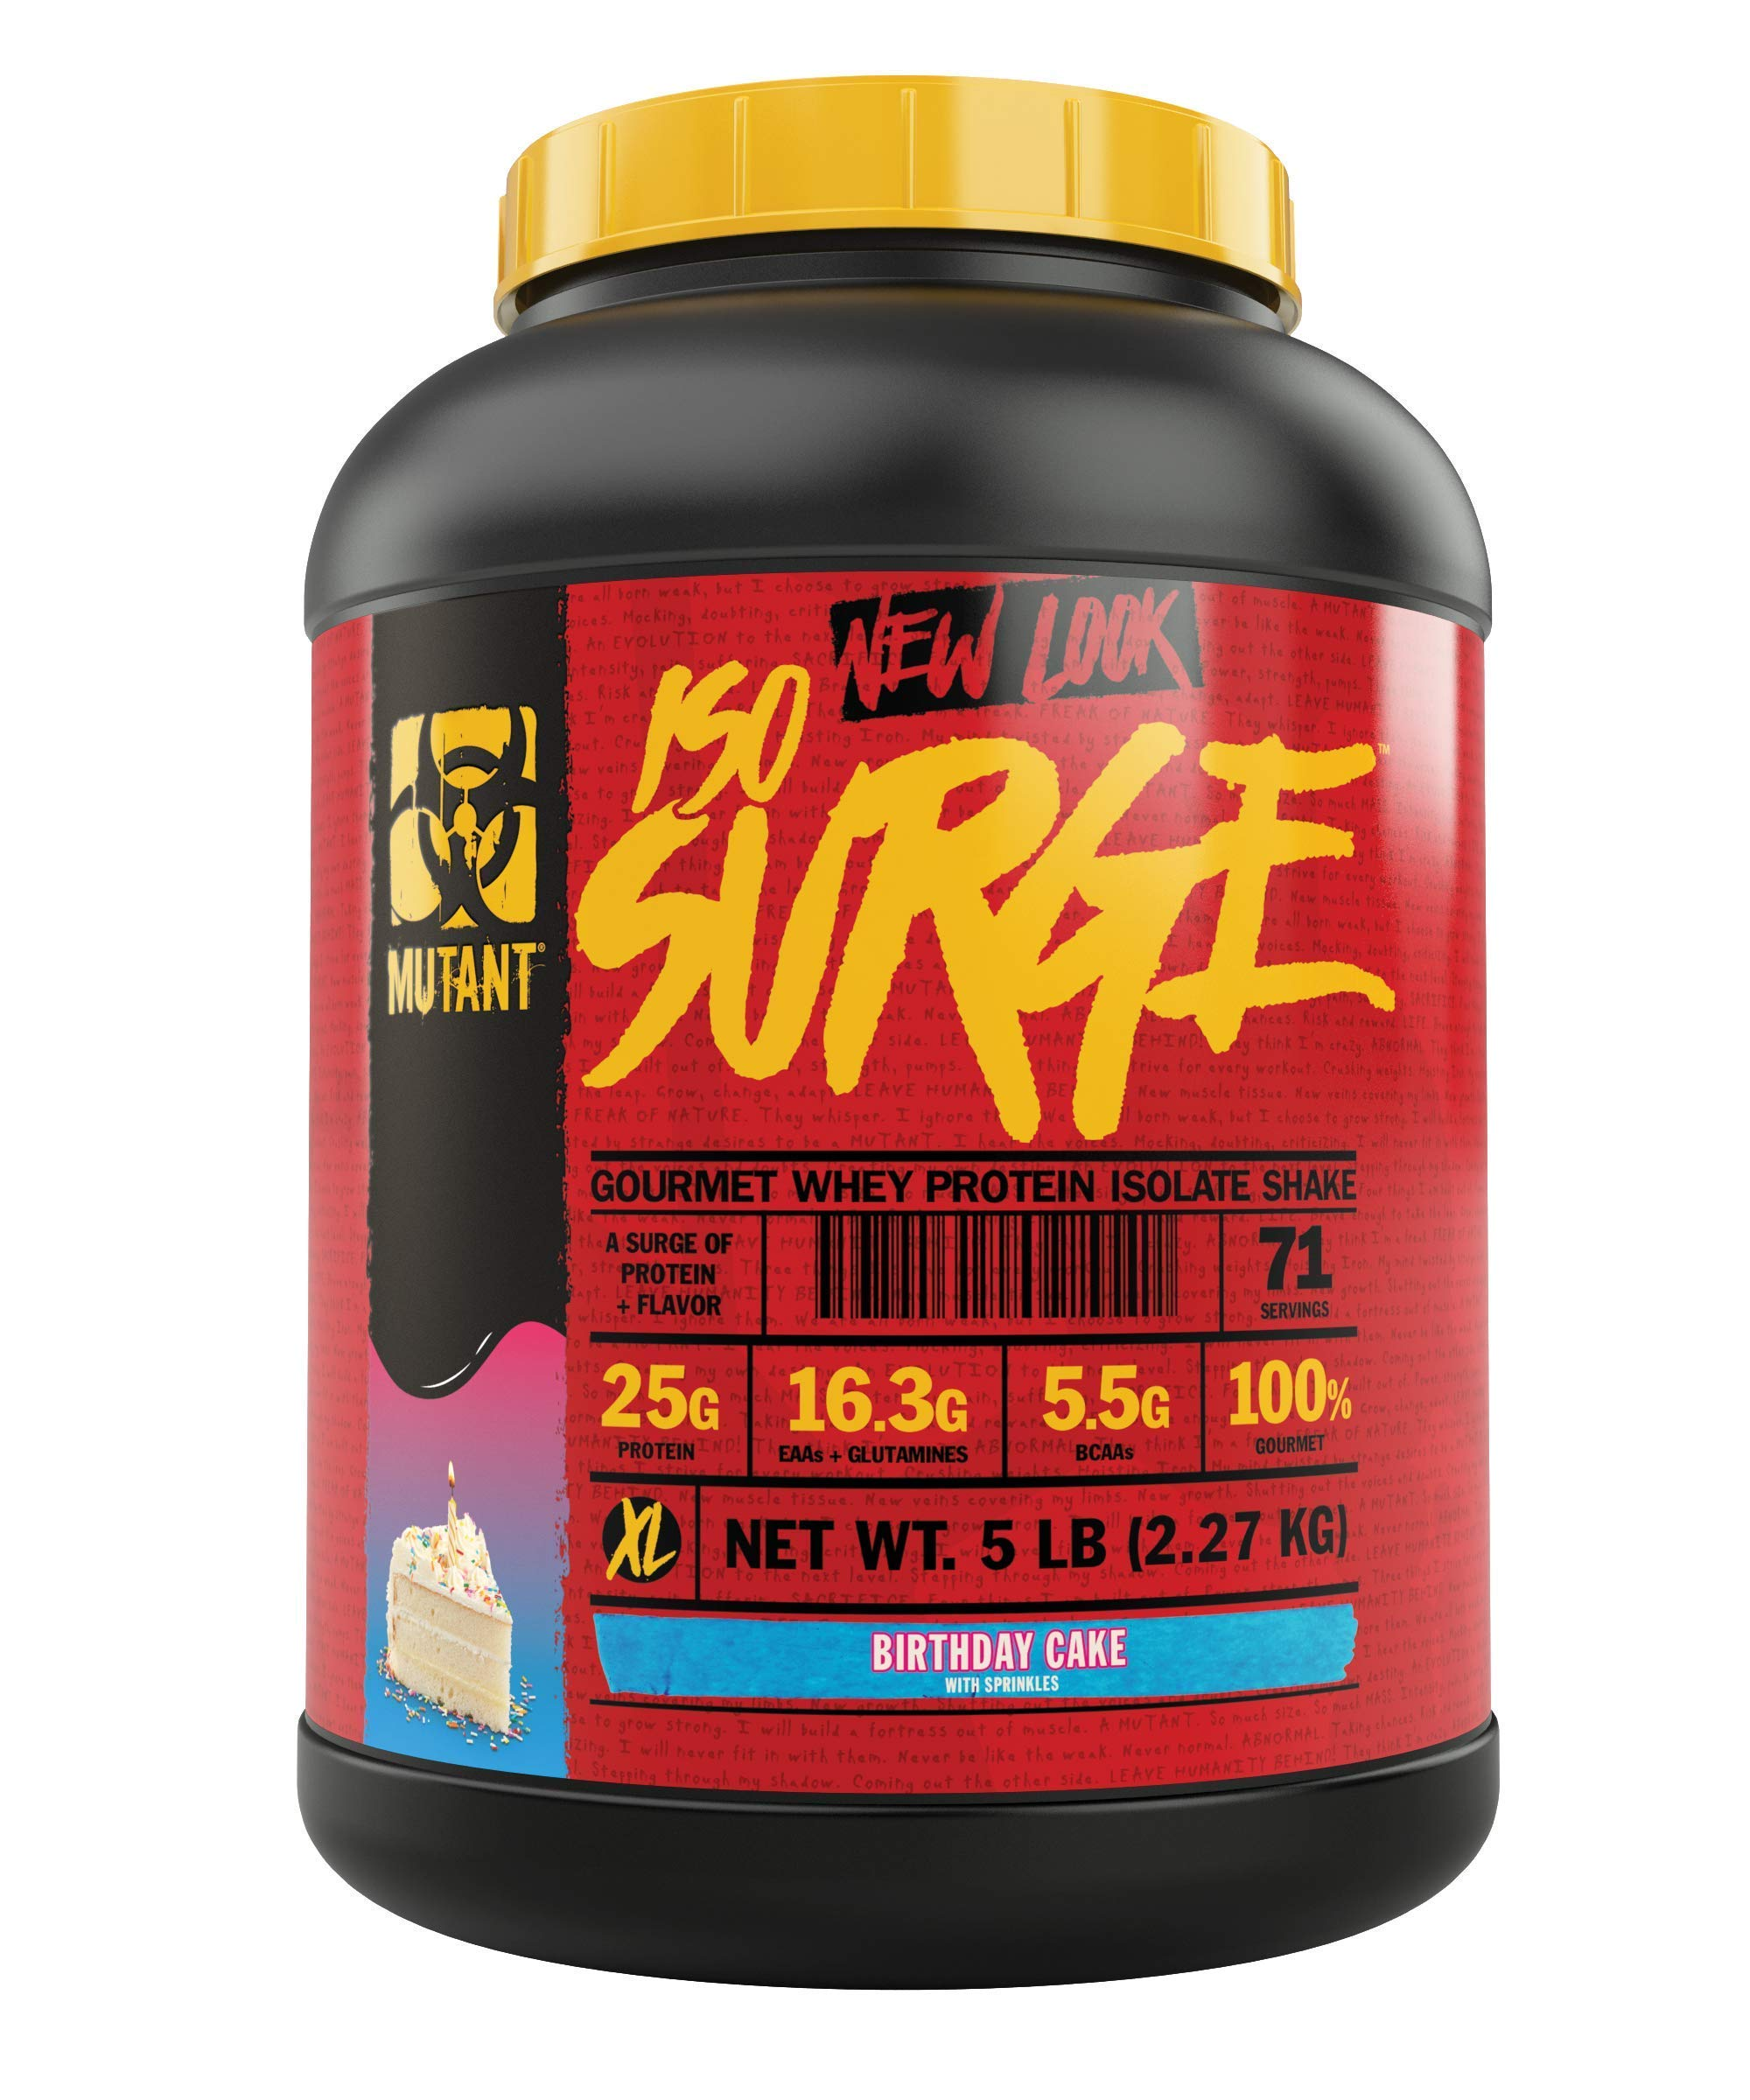 Amazon Mutant ISO Surge Whey Protein Powder Acts Fast To Help